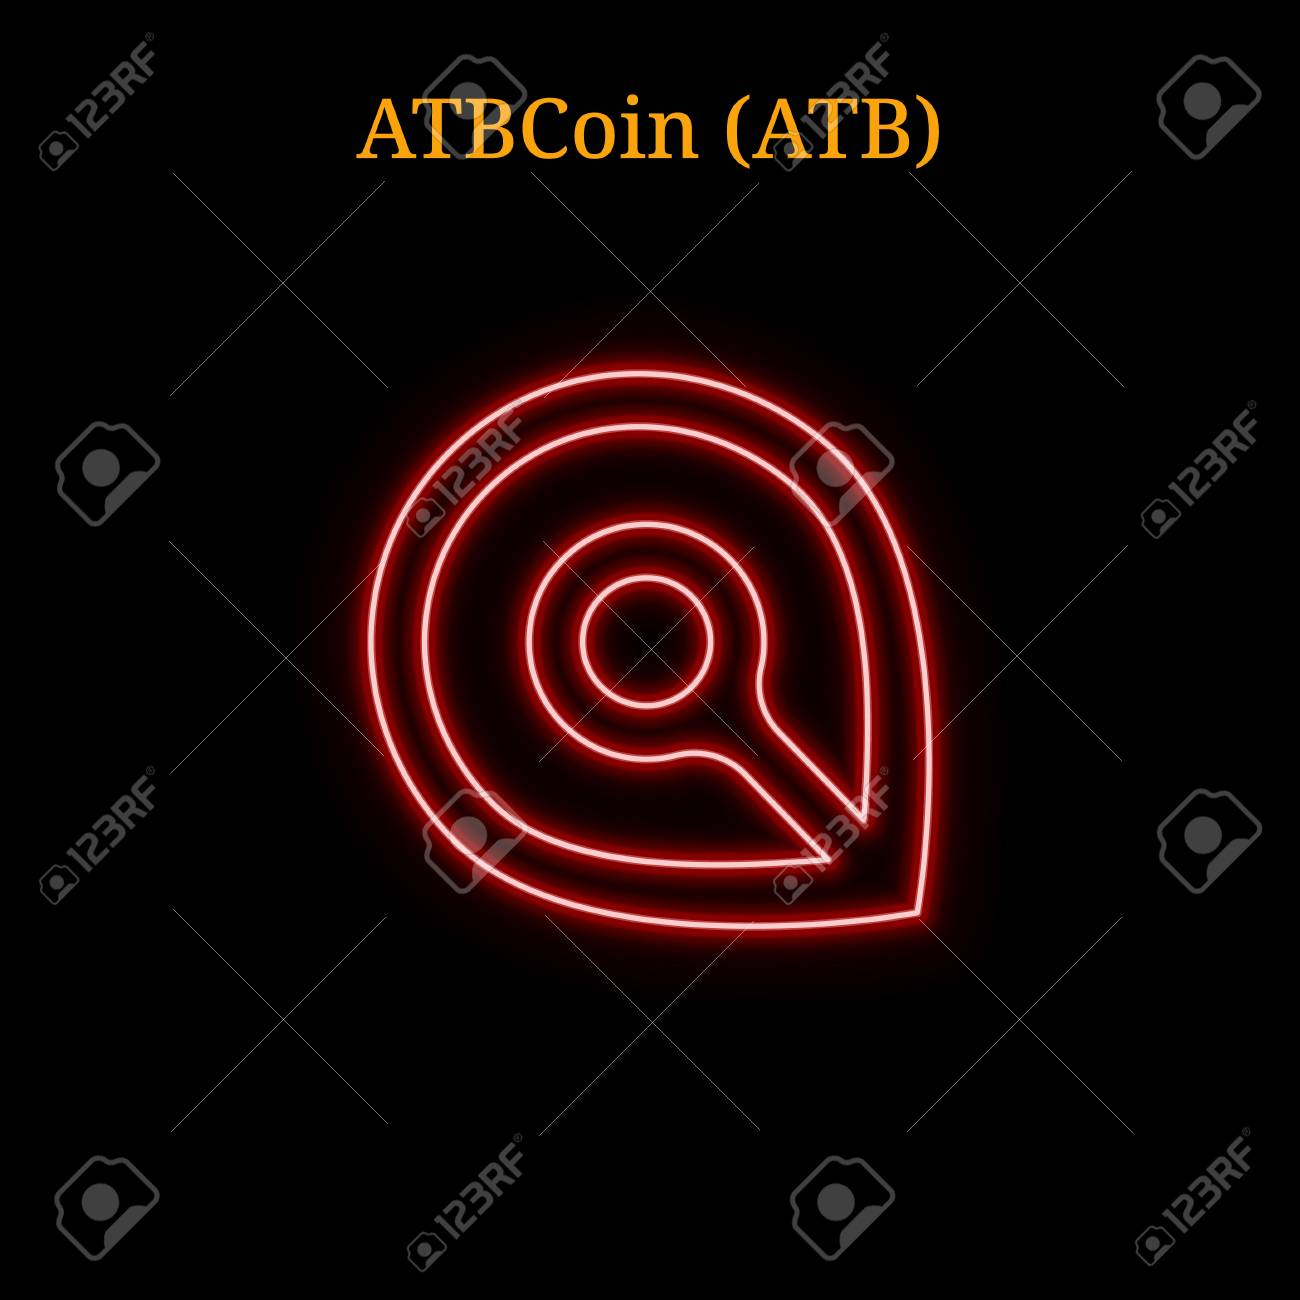 atb coins cryptocurrency